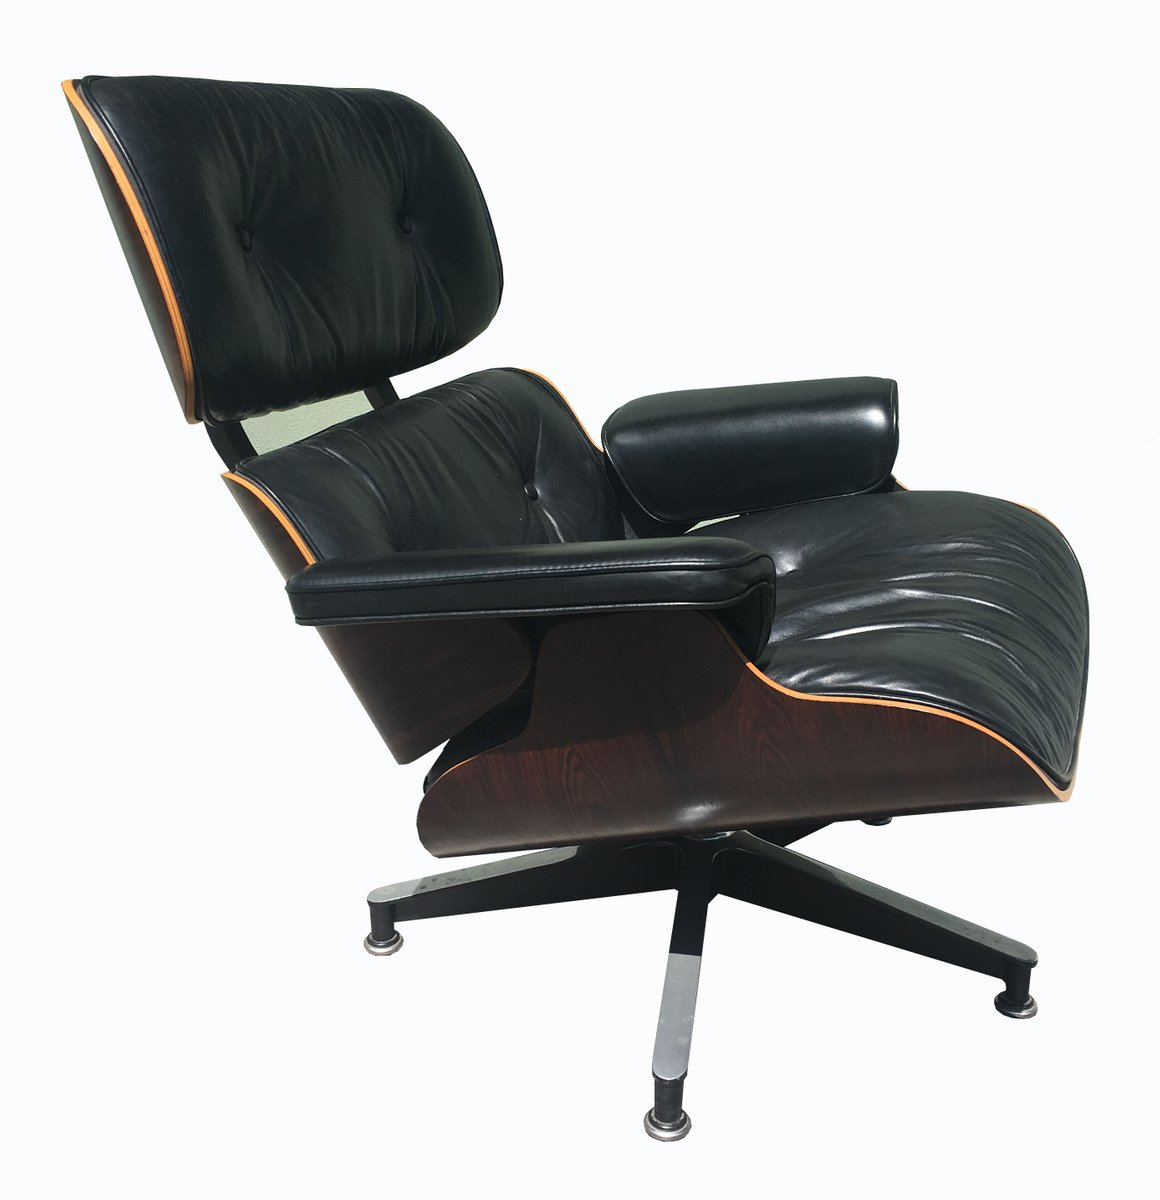 670 671 lounge chair ottoman by charles and ray eames for herman miller 1980s for sale at. Black Bedroom Furniture Sets. Home Design Ideas